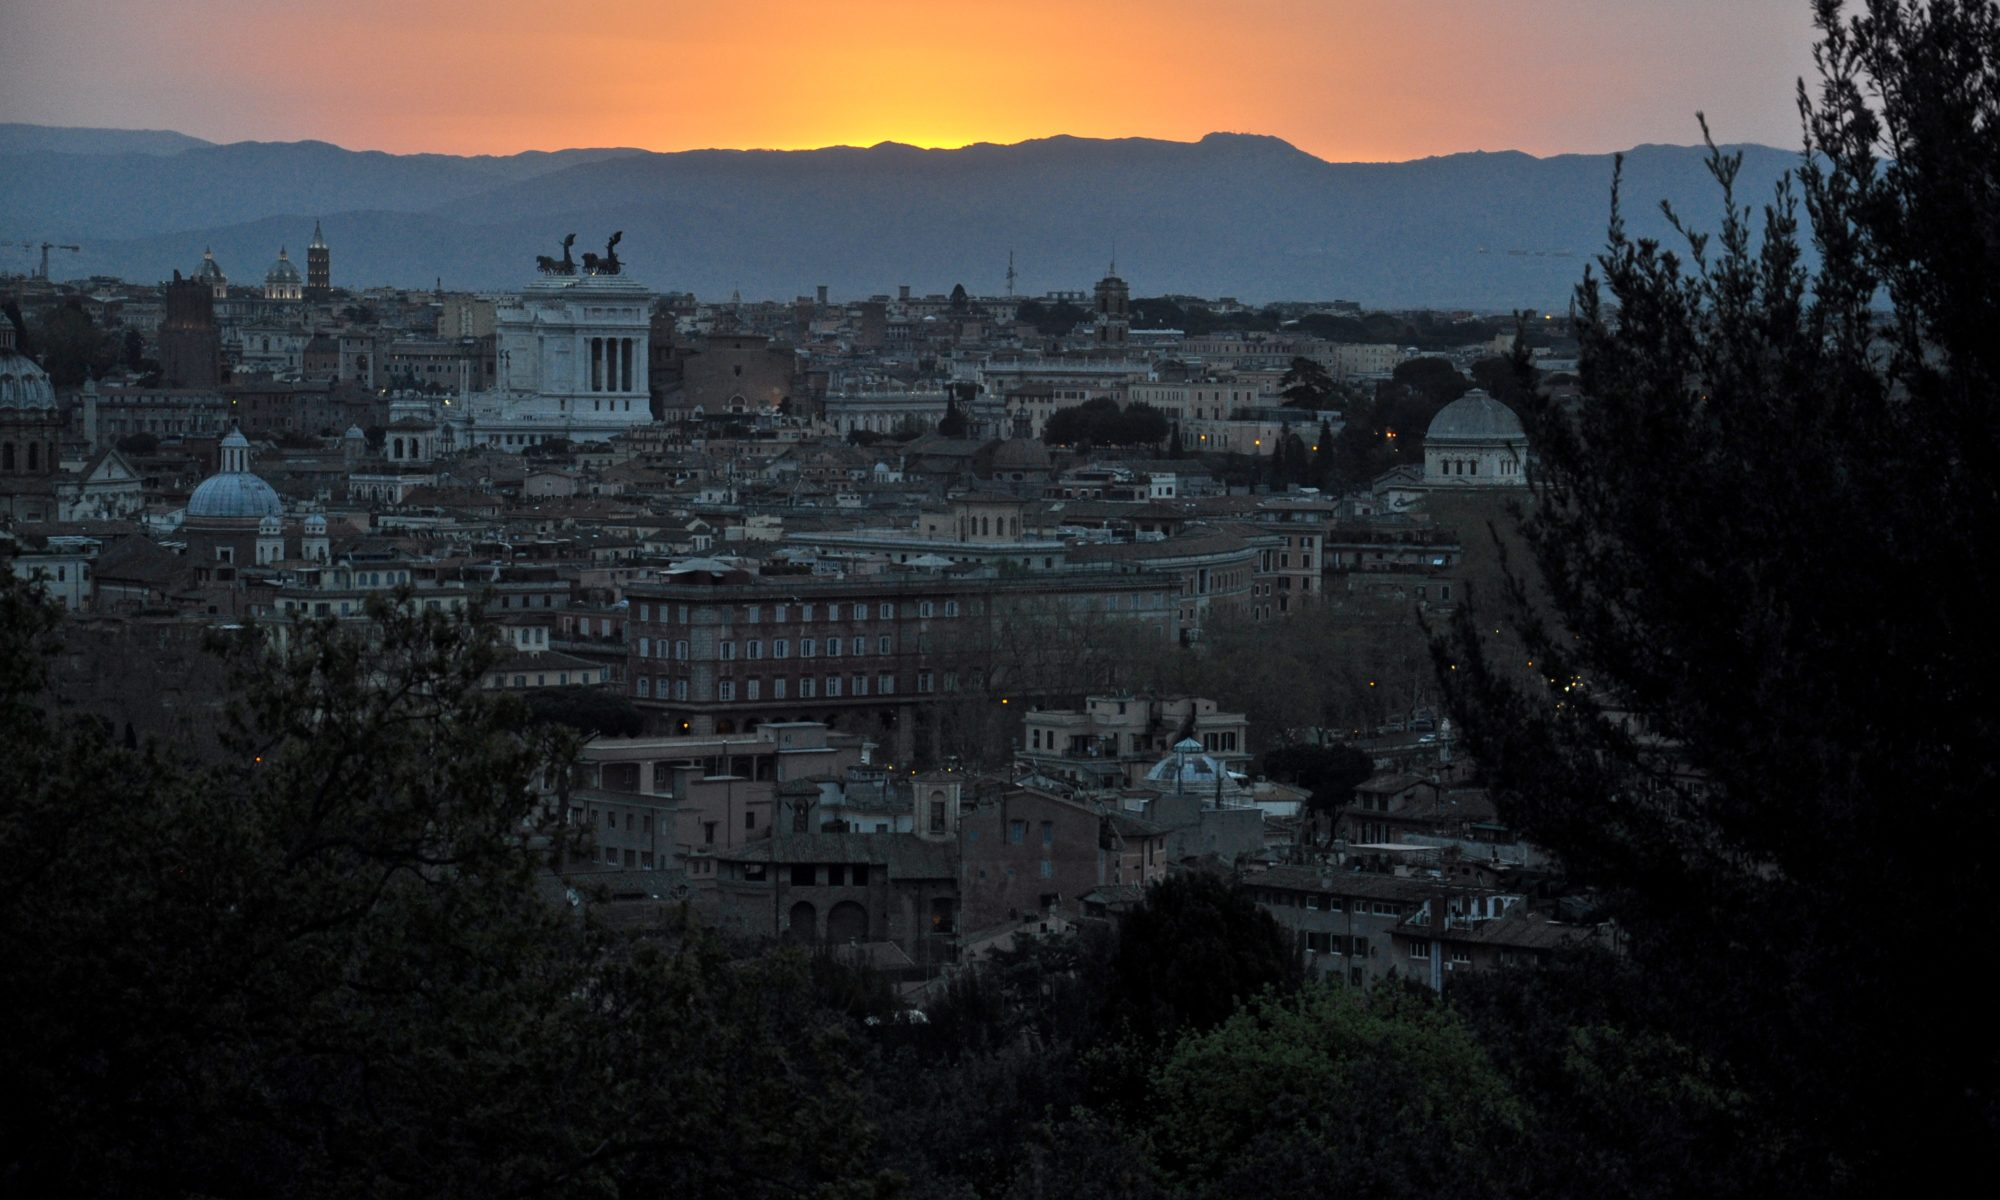 Sunrise in Rome